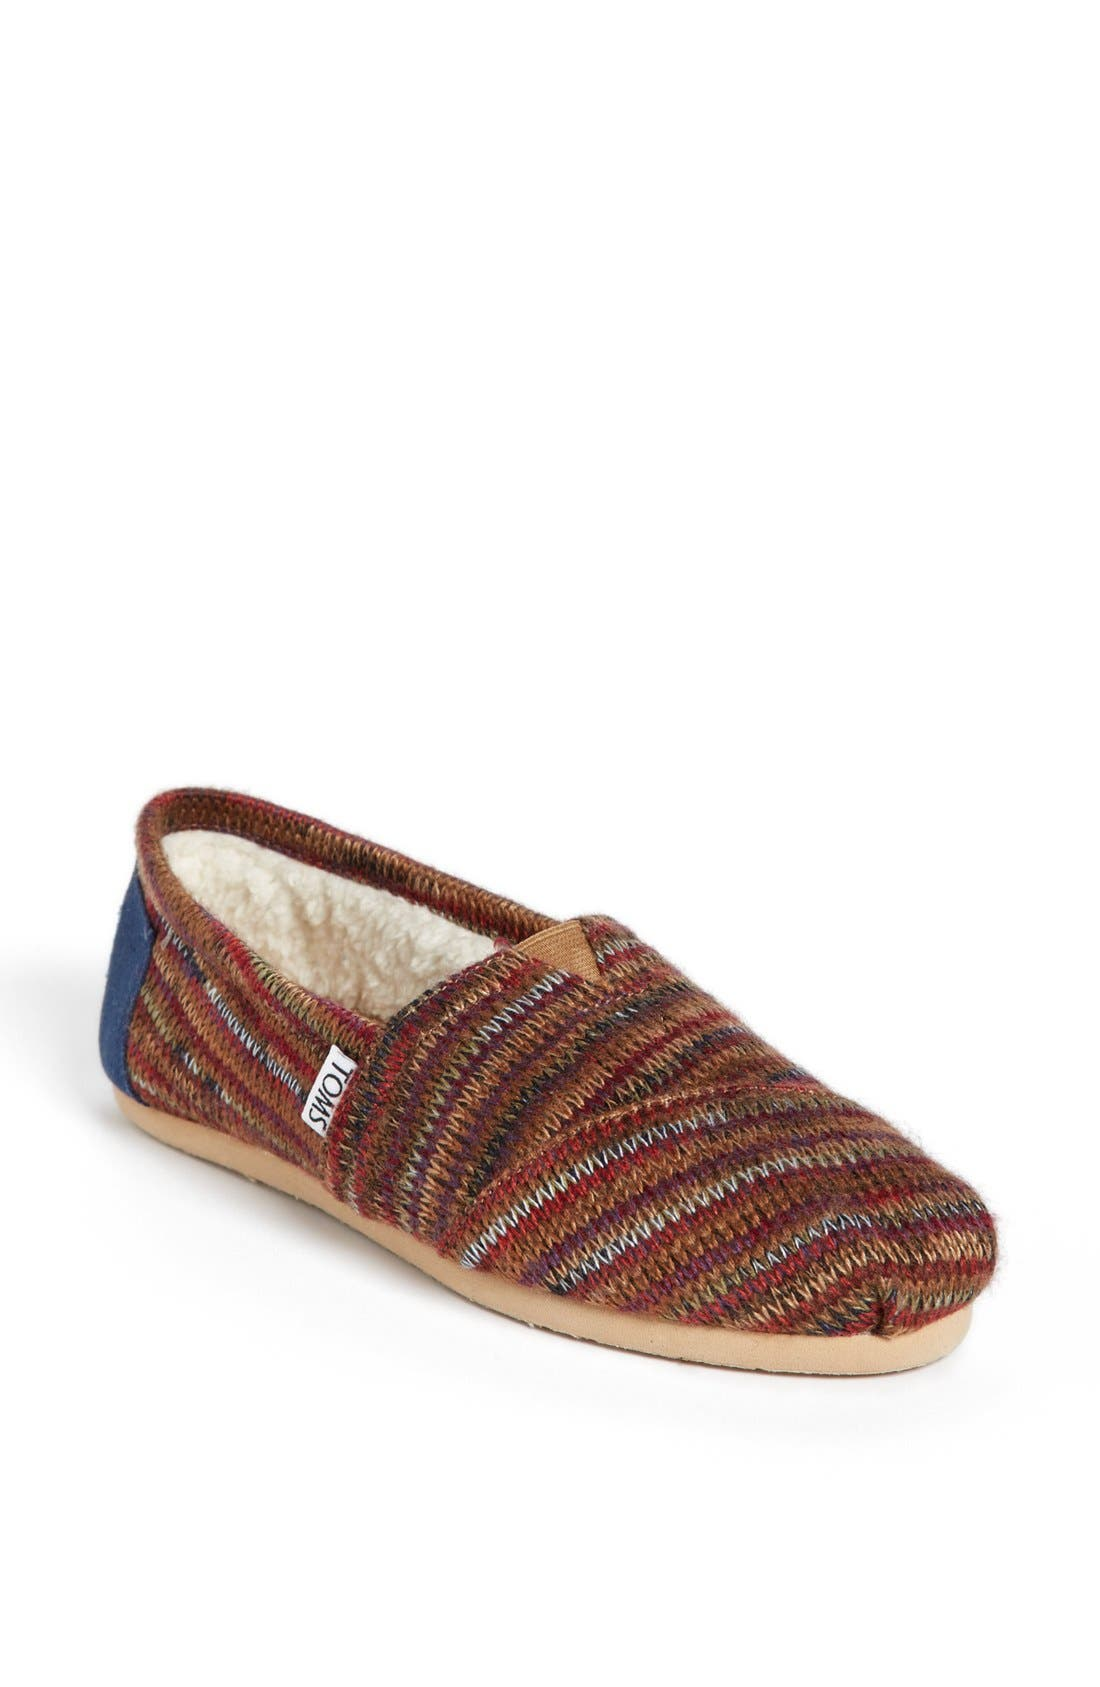 Alternate Image 1 Selected - TOMS 'Classic - Rust Knit' Slip-On (Women)